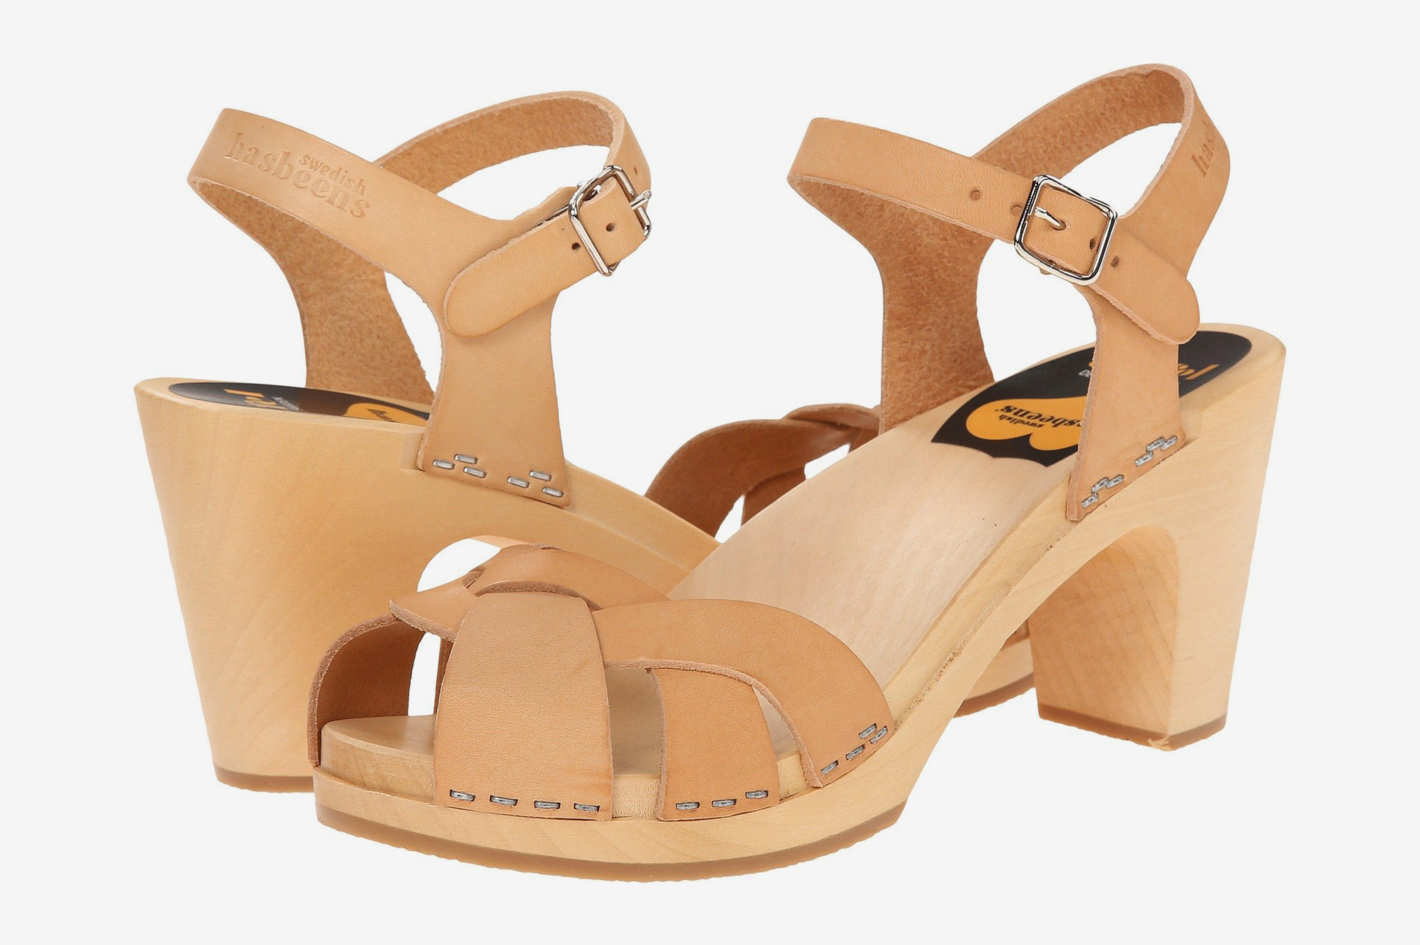 Swedish Hasbeens Kringlan Sandals